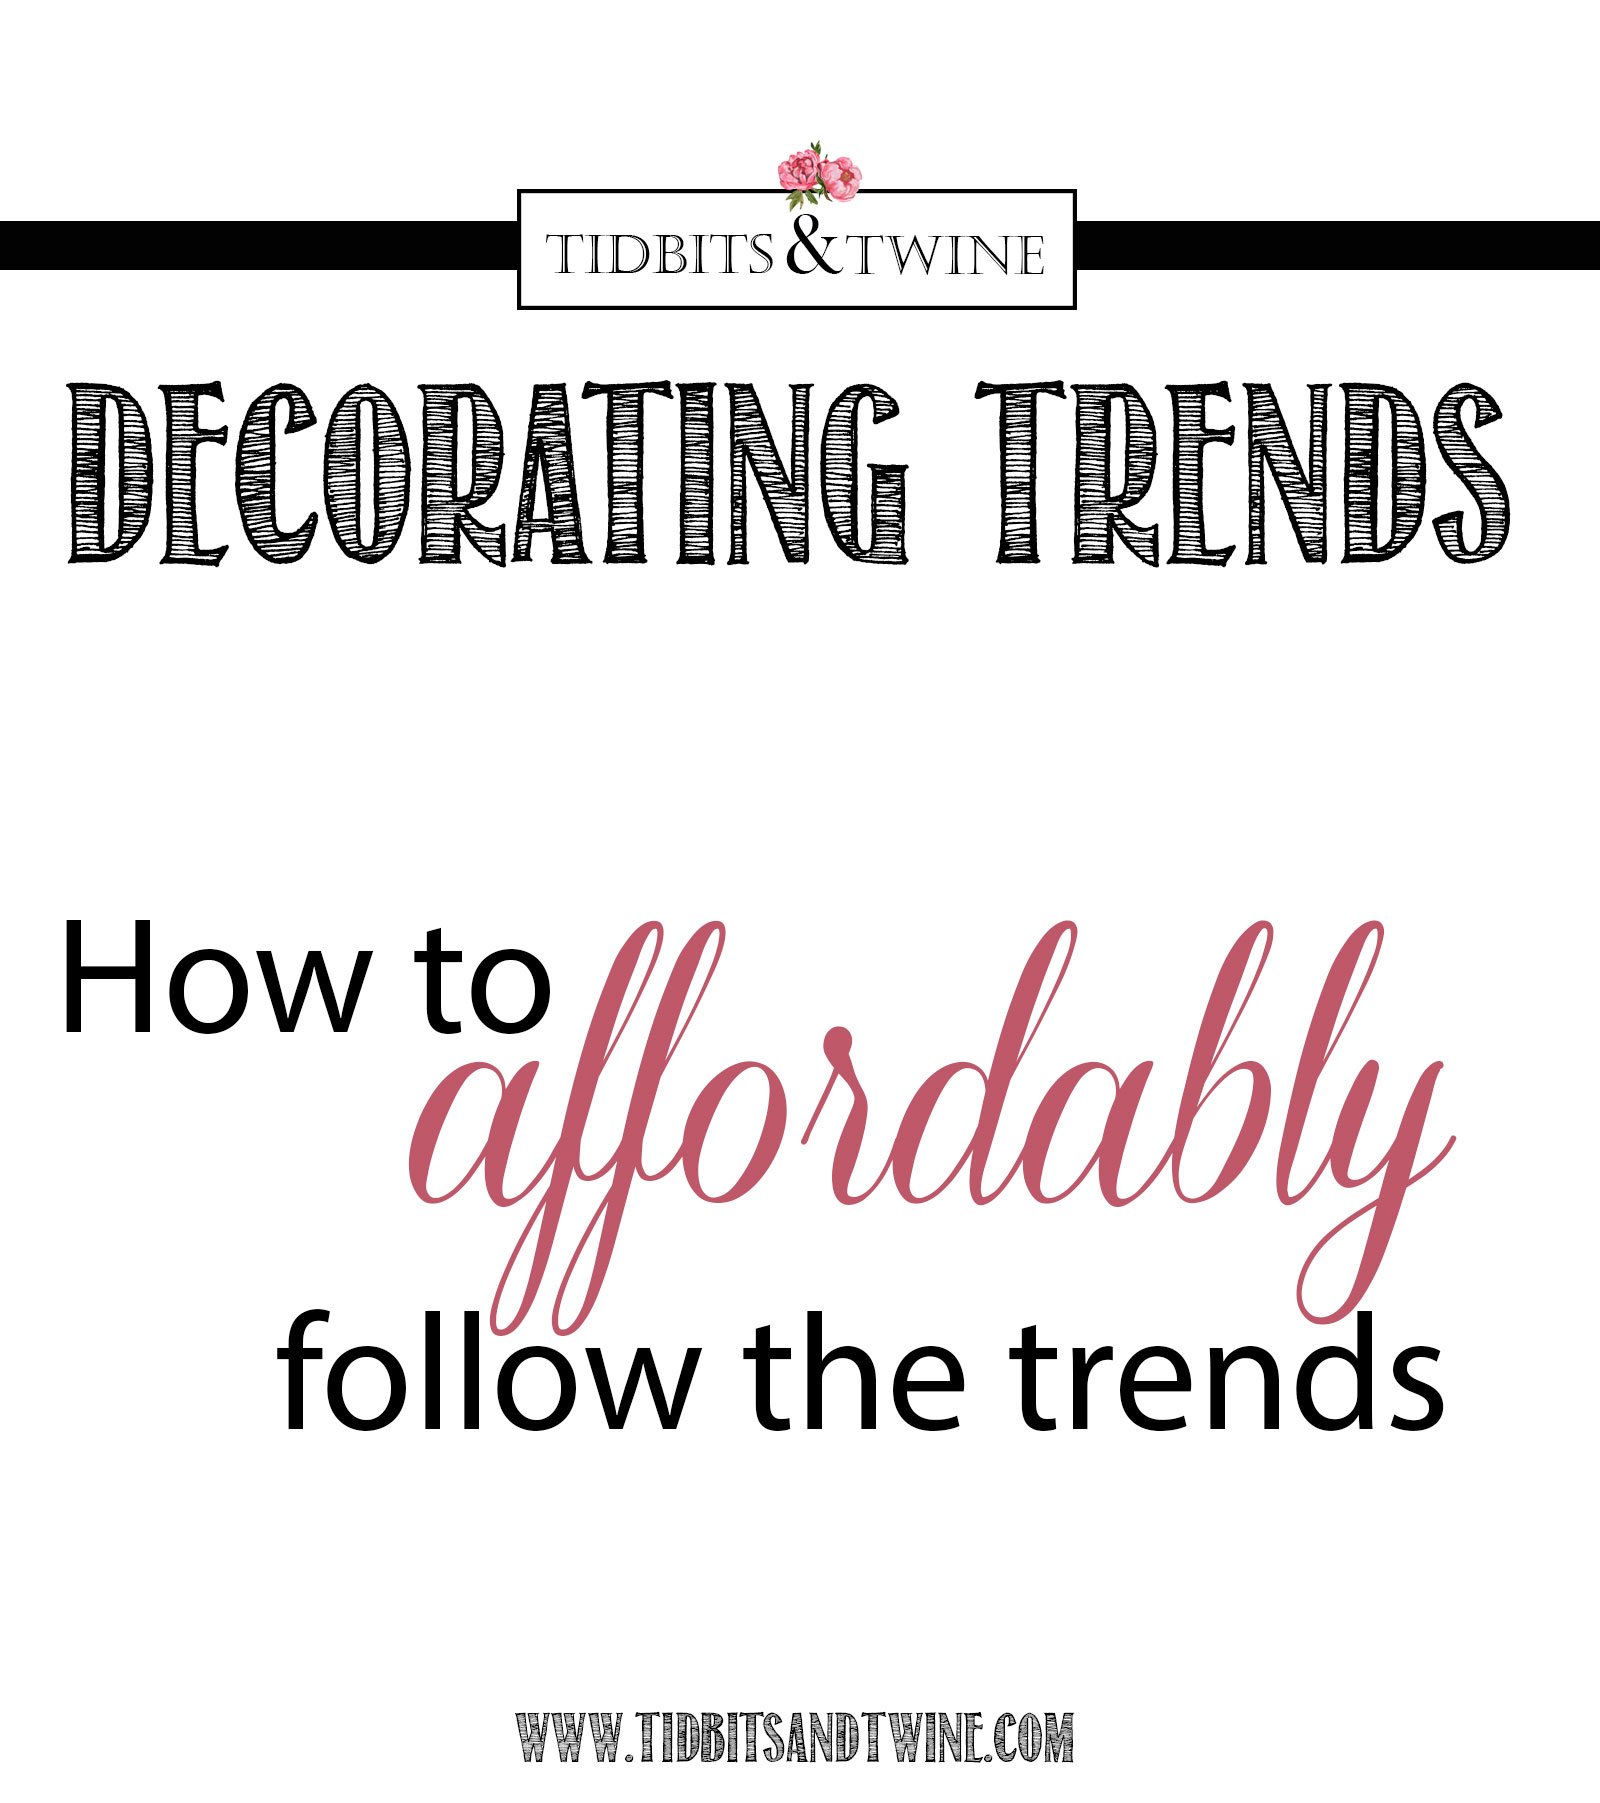 Malerisch Bad Trends 2017 Galerie Von How To Affordably Follow Decorating